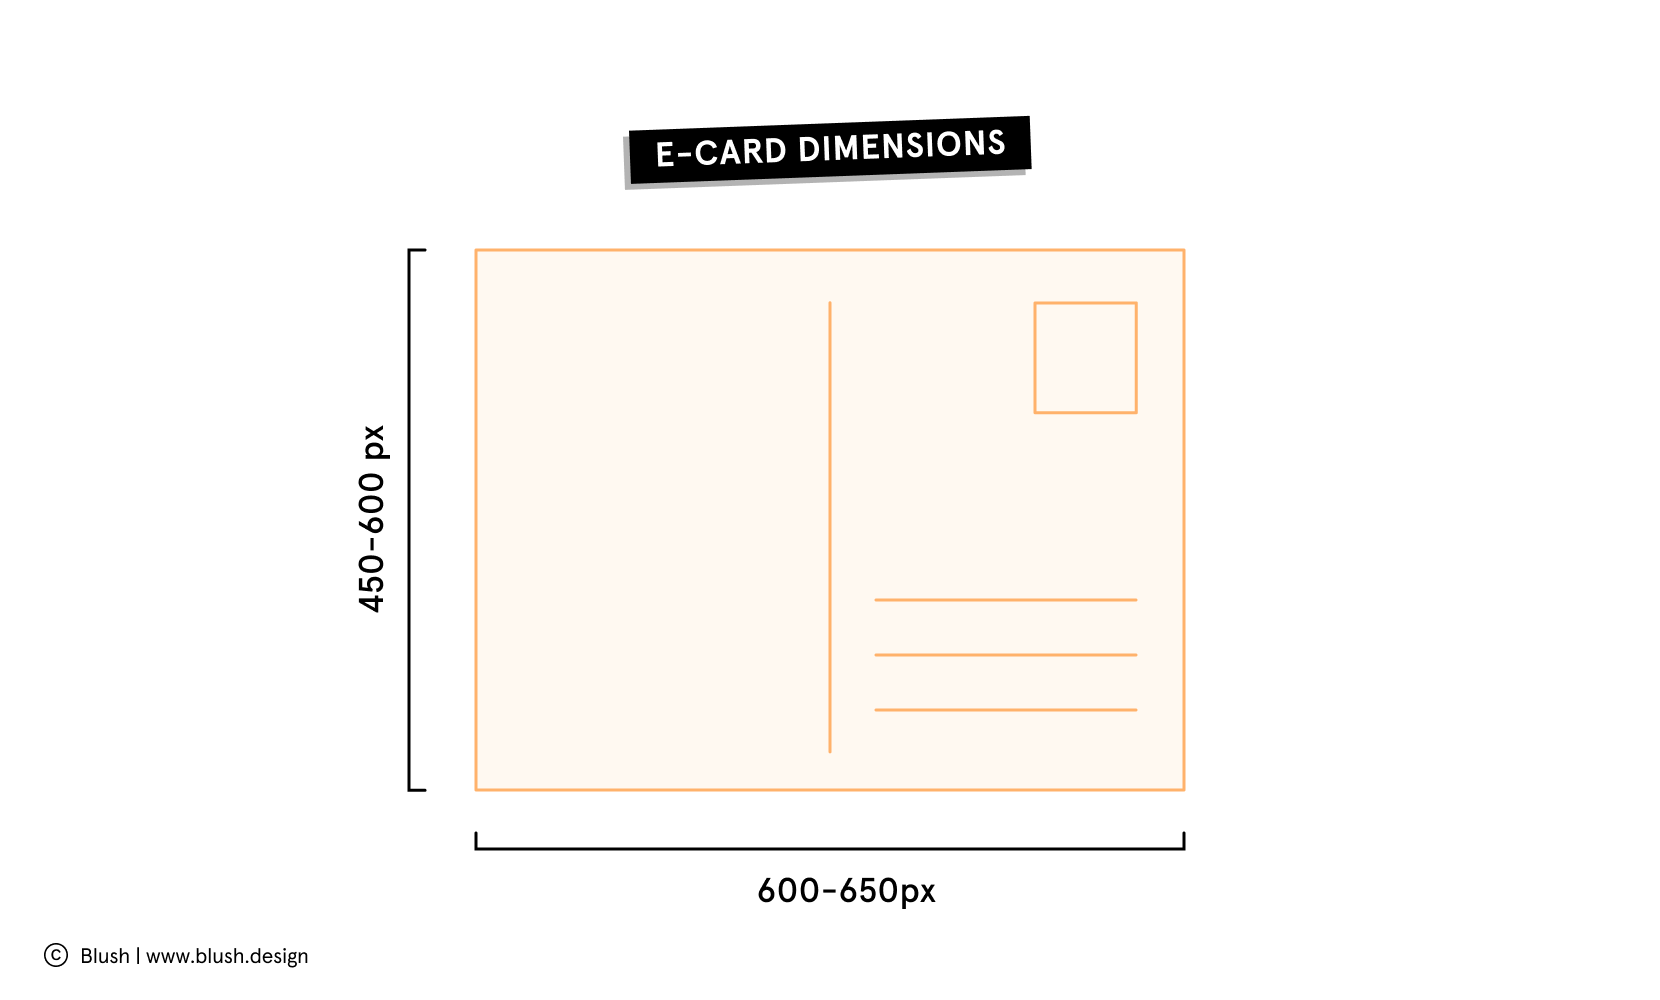 Illustration of an ecard template with dimensions